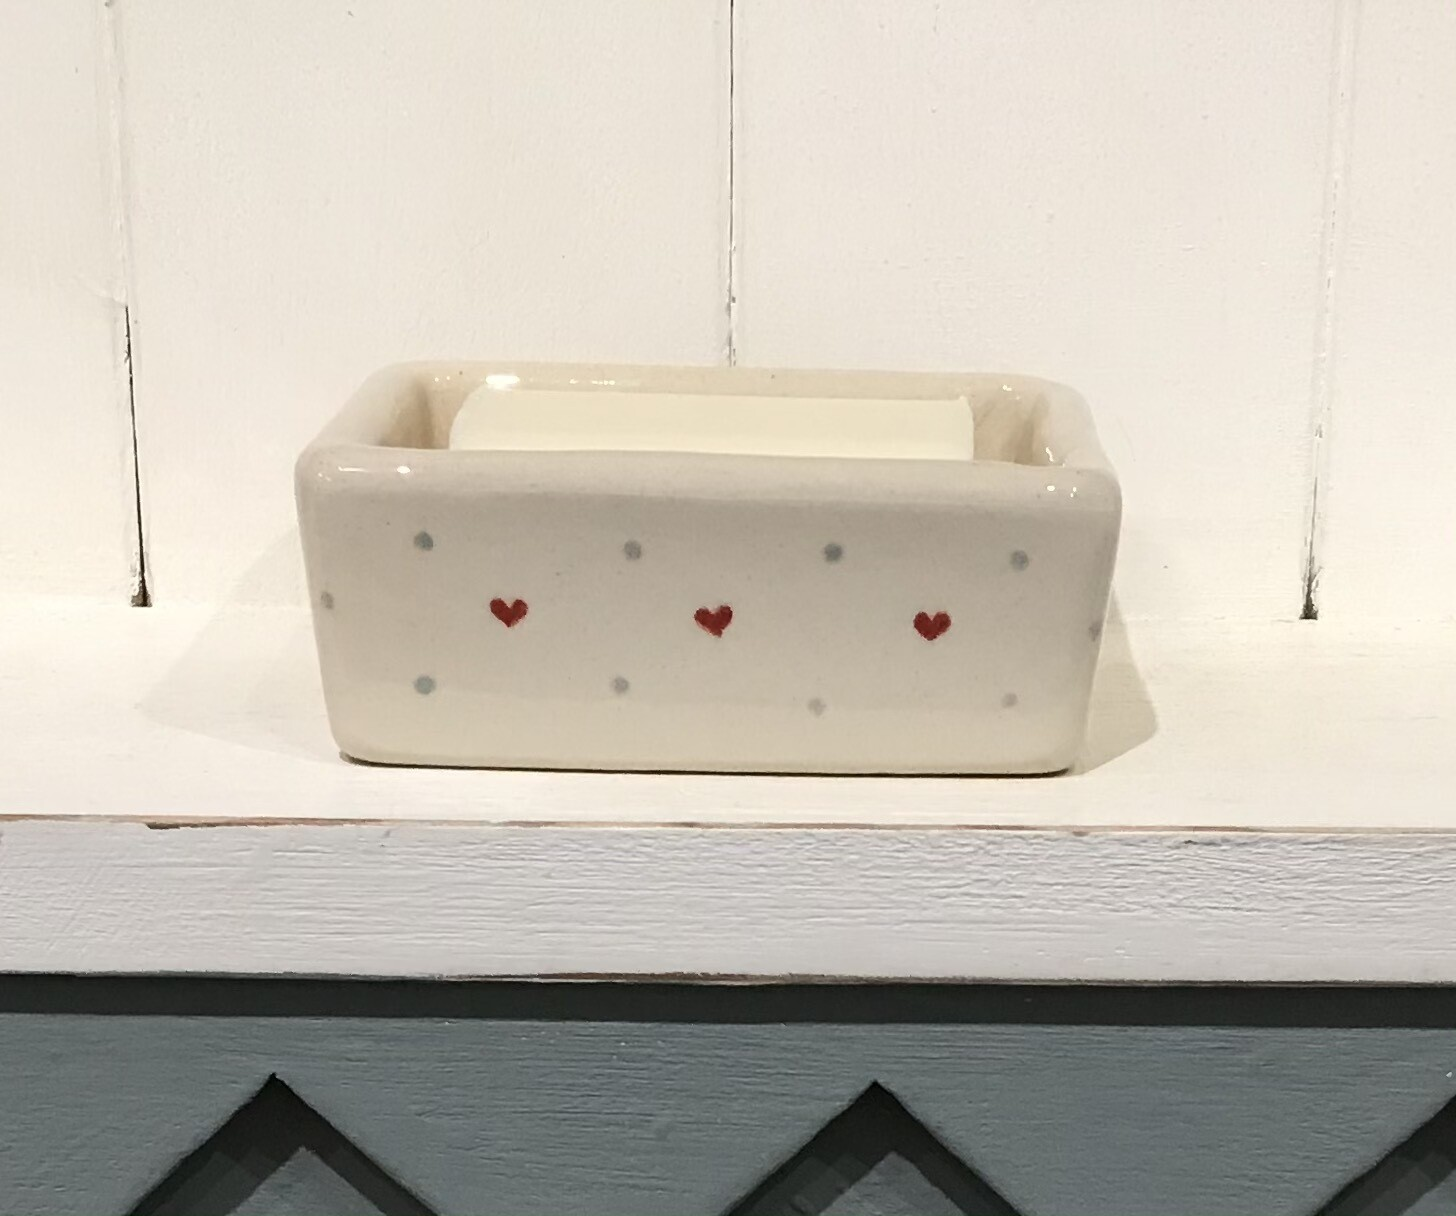 Jane Hogben Soap Dish - Hearts and Spots on Cream